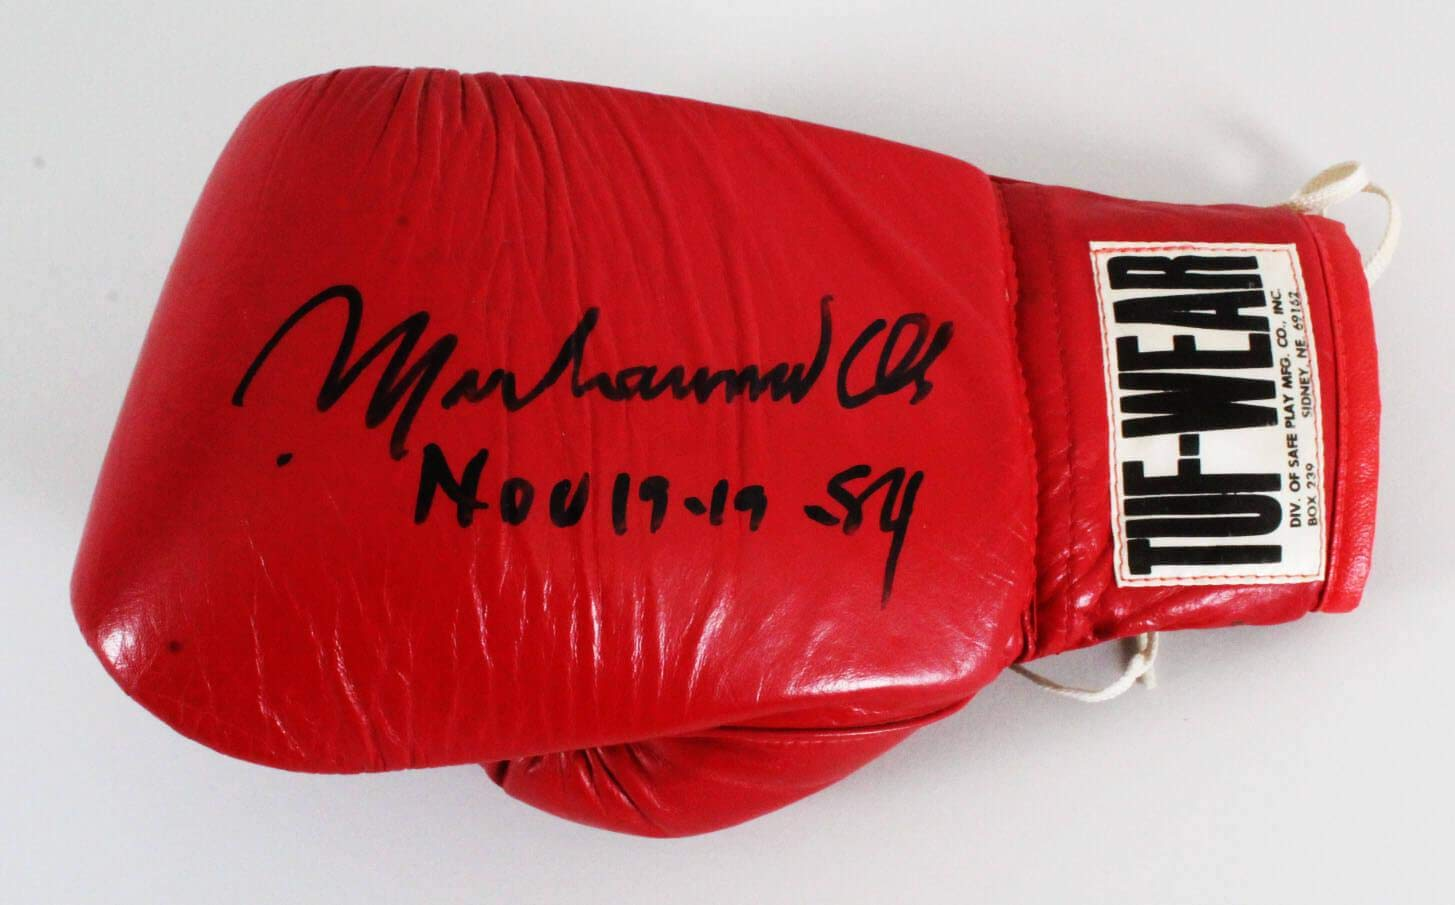 Muhammad Ali Signed Boxing Glove - COA - JSA Certified - Autographed Boxing Gloves Sports Memorabilia